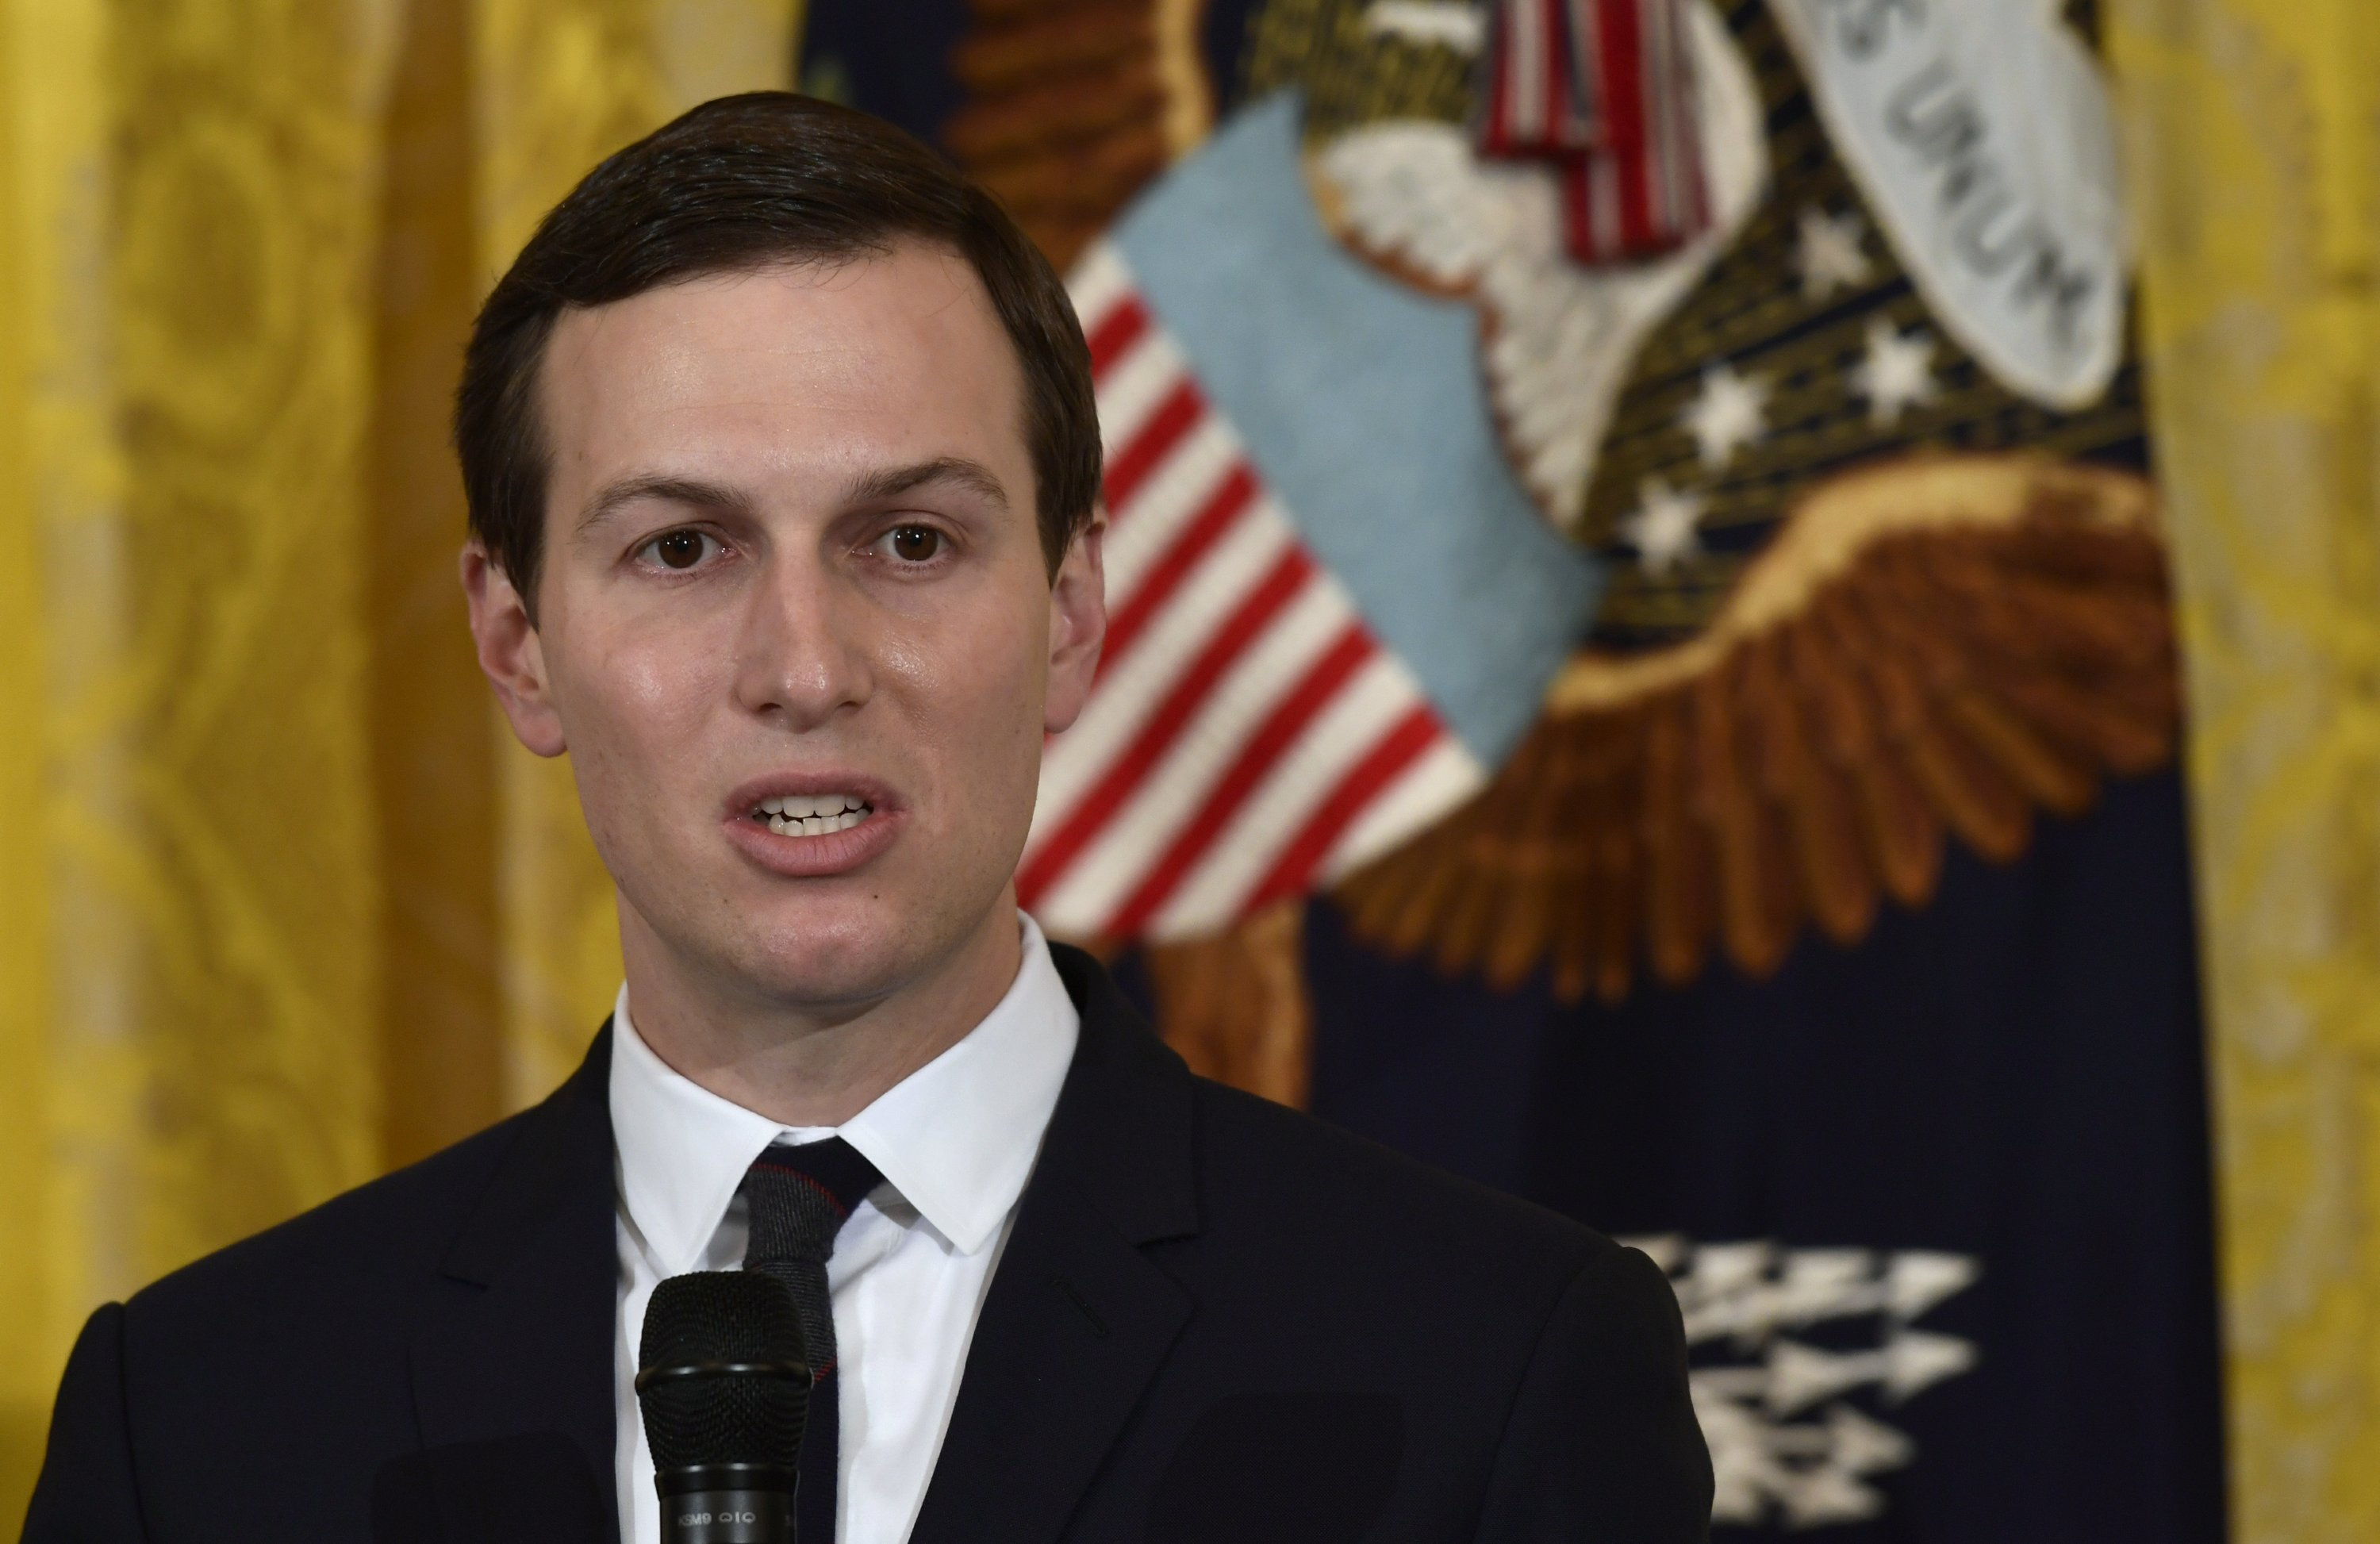 Kushner given security clearance after background check